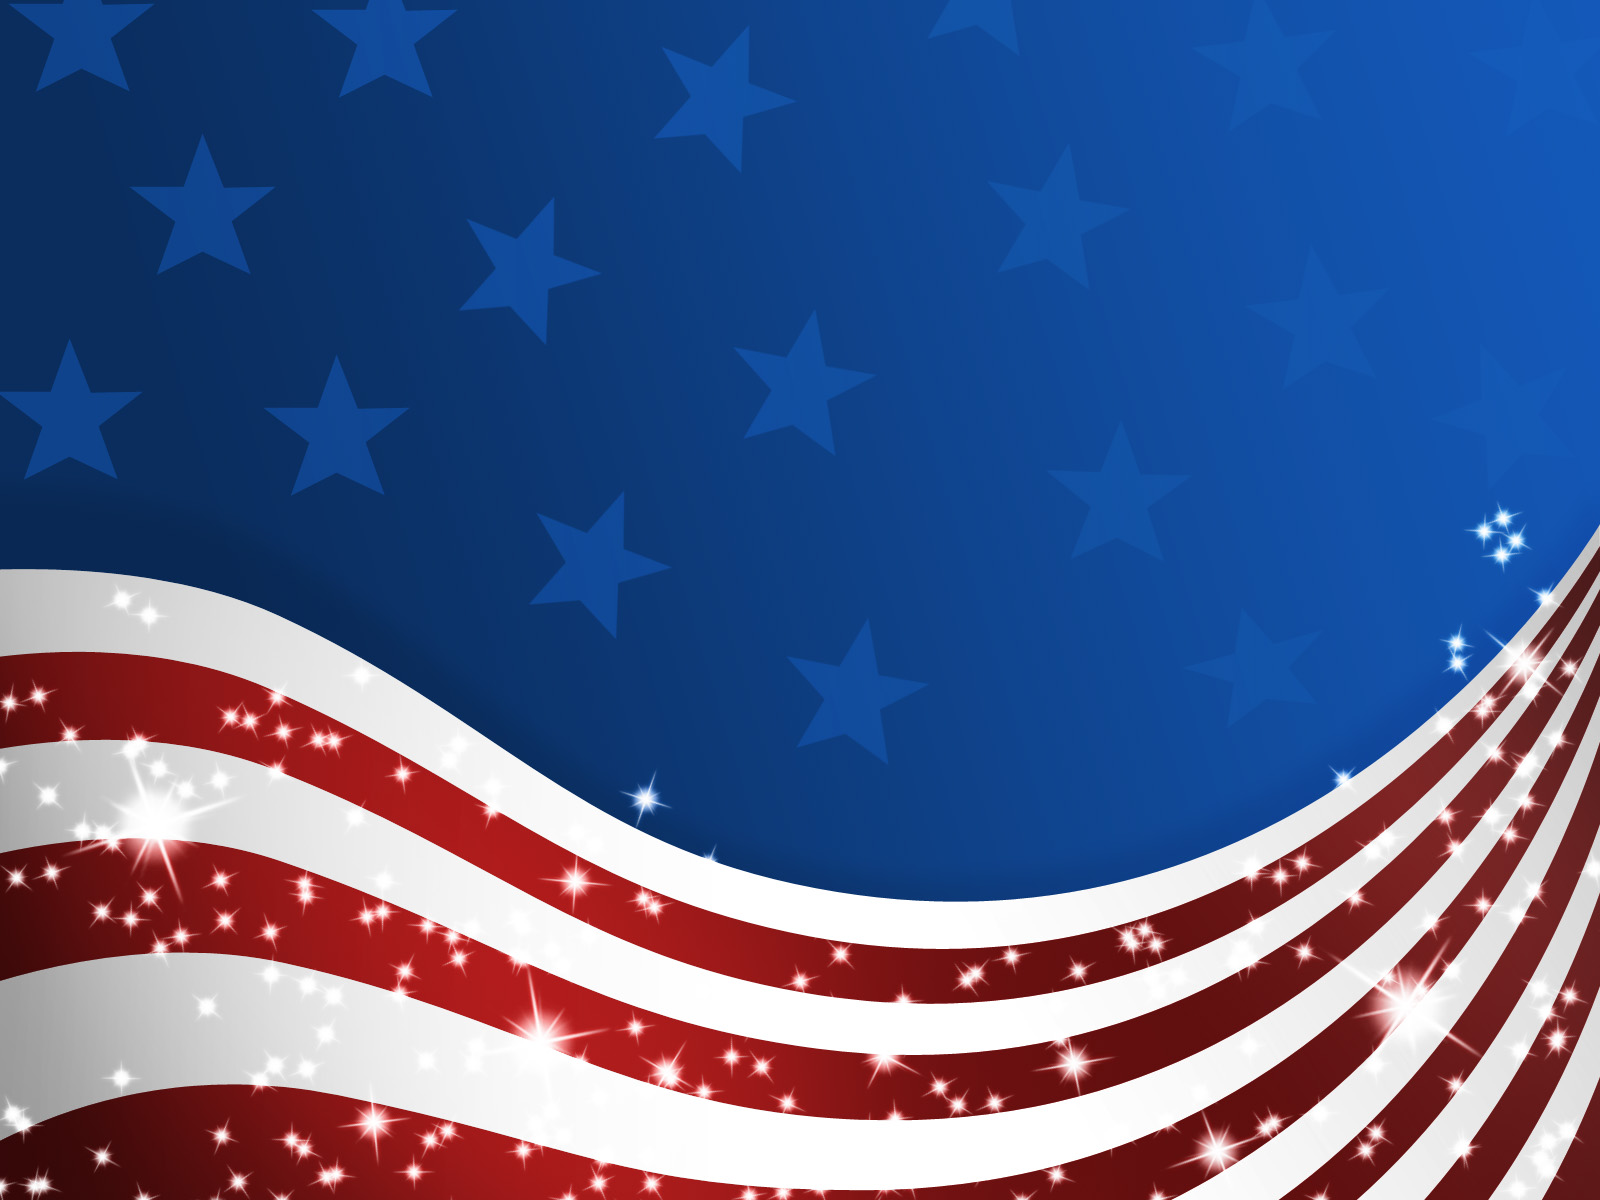 Collection of American Backgrounds on HDWallpapers